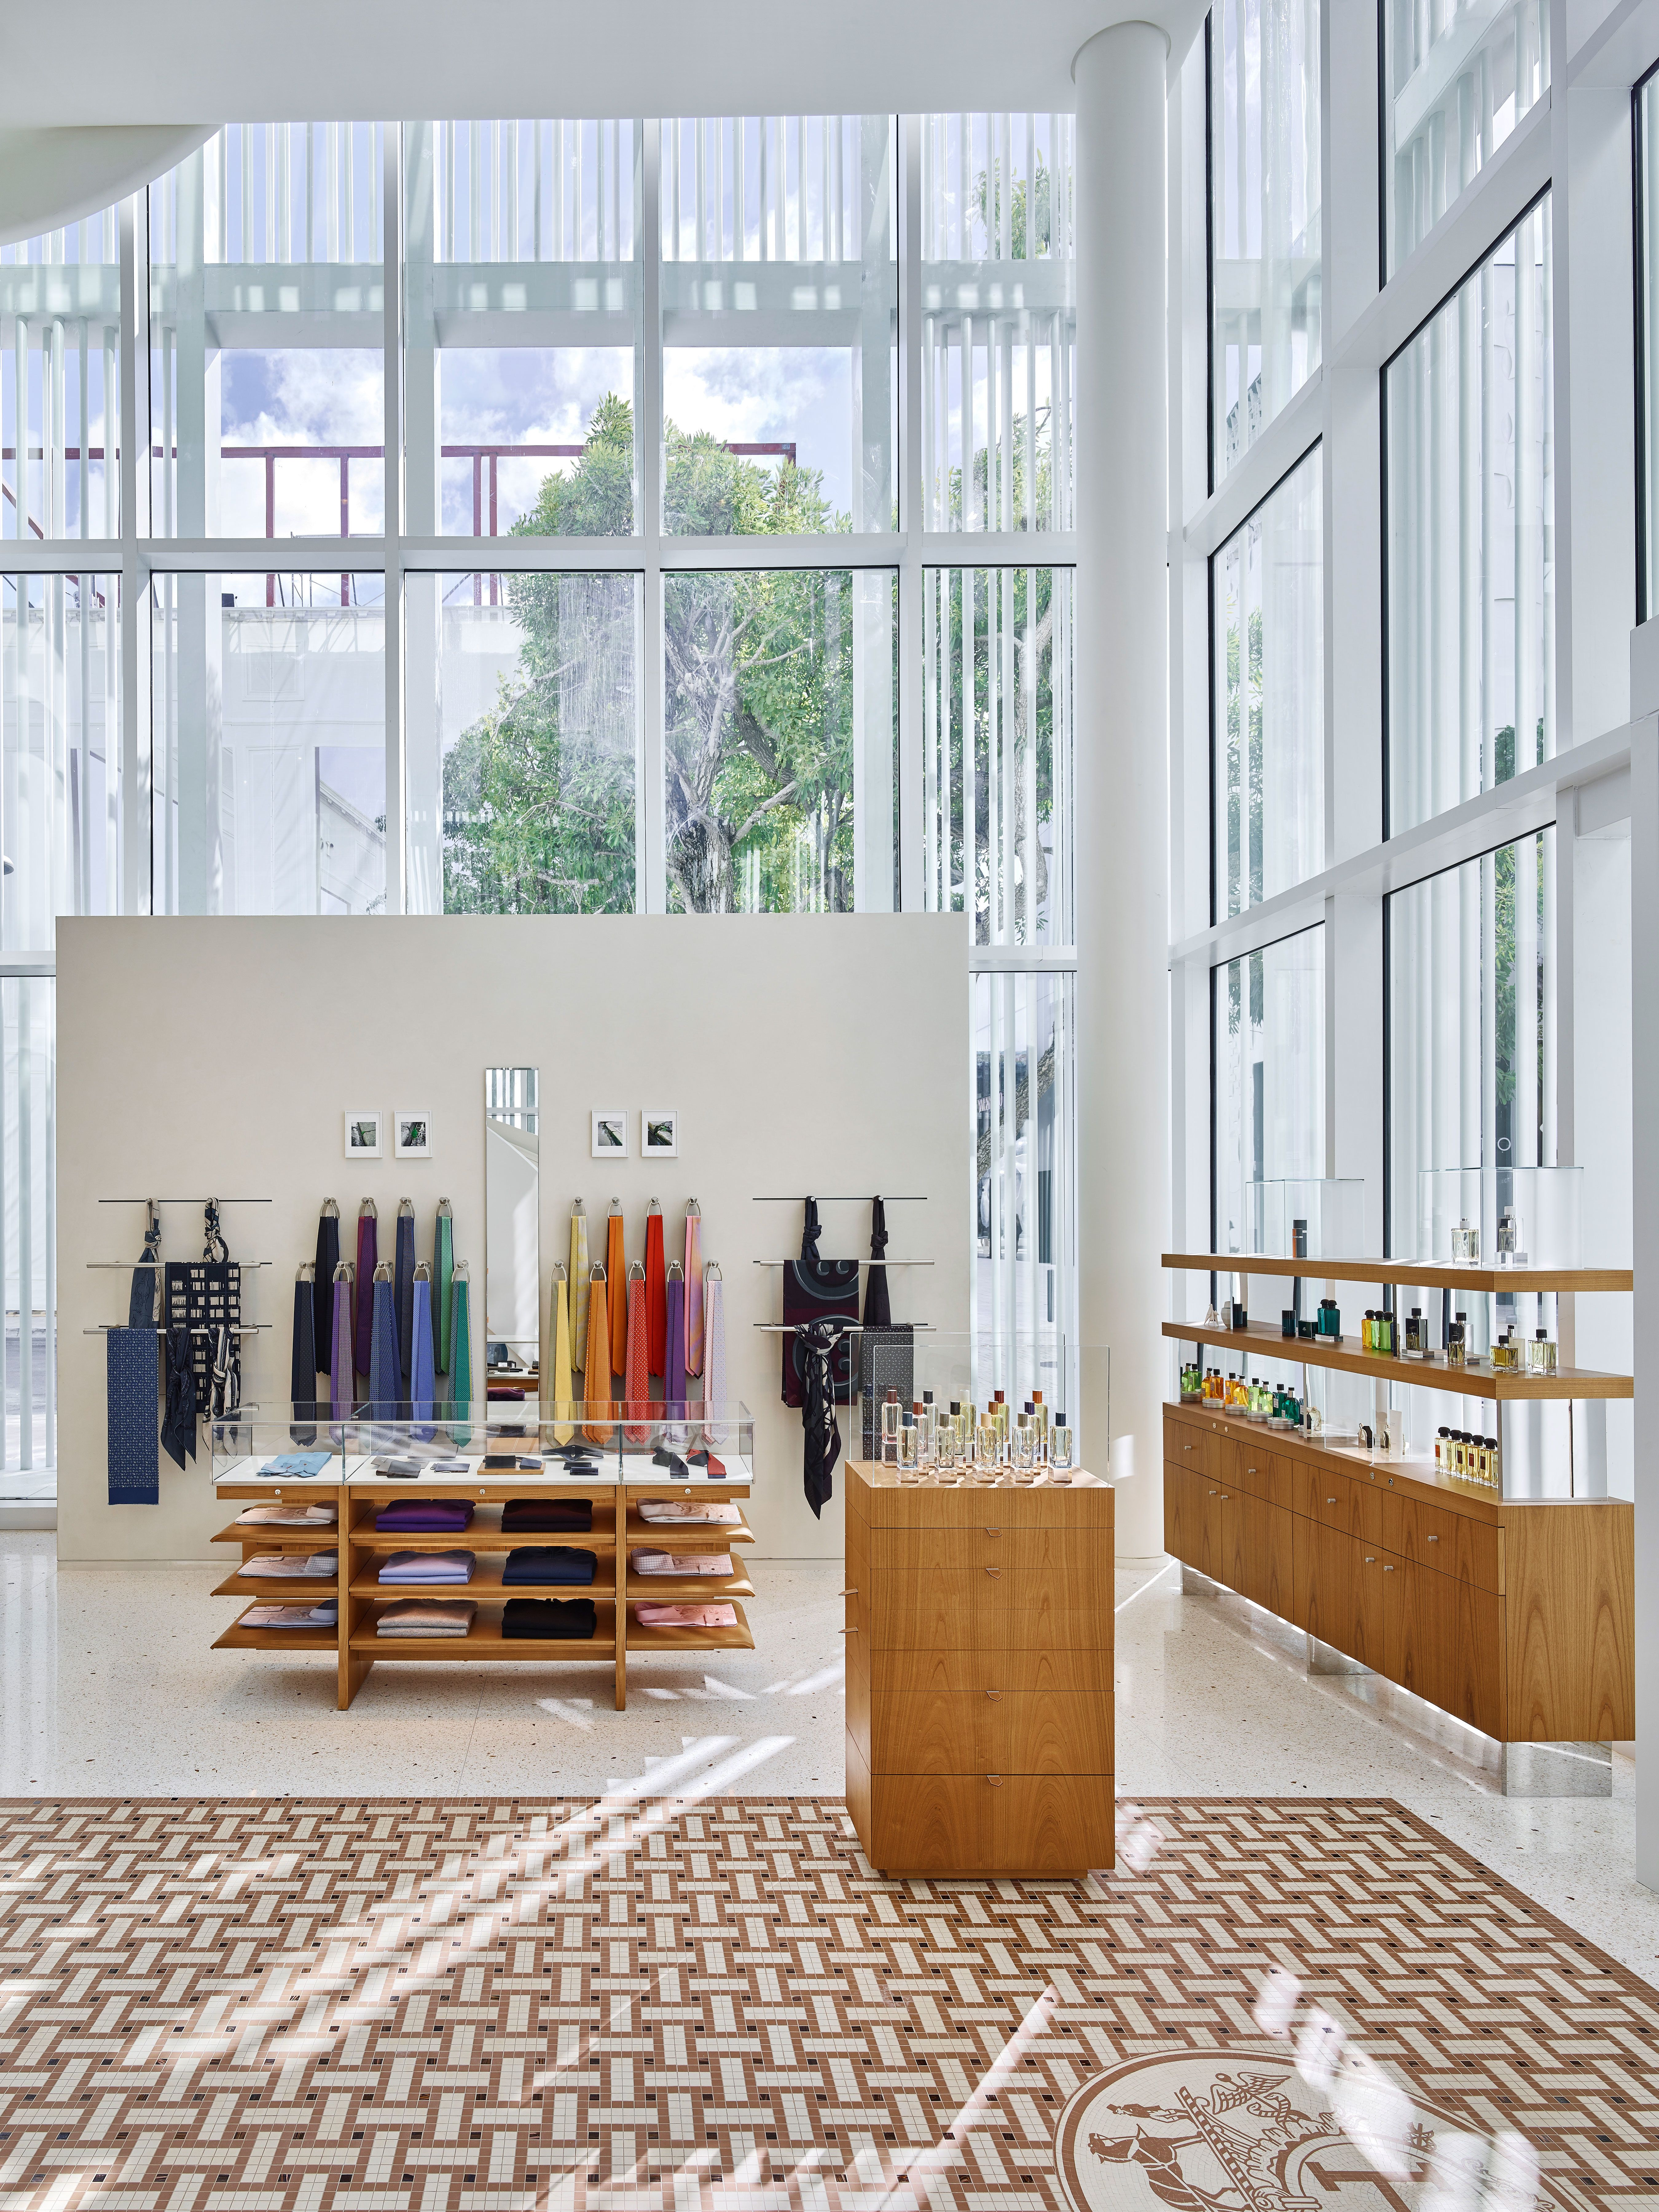 Hermes Opens A Striking New Shop In Miami S Design District With